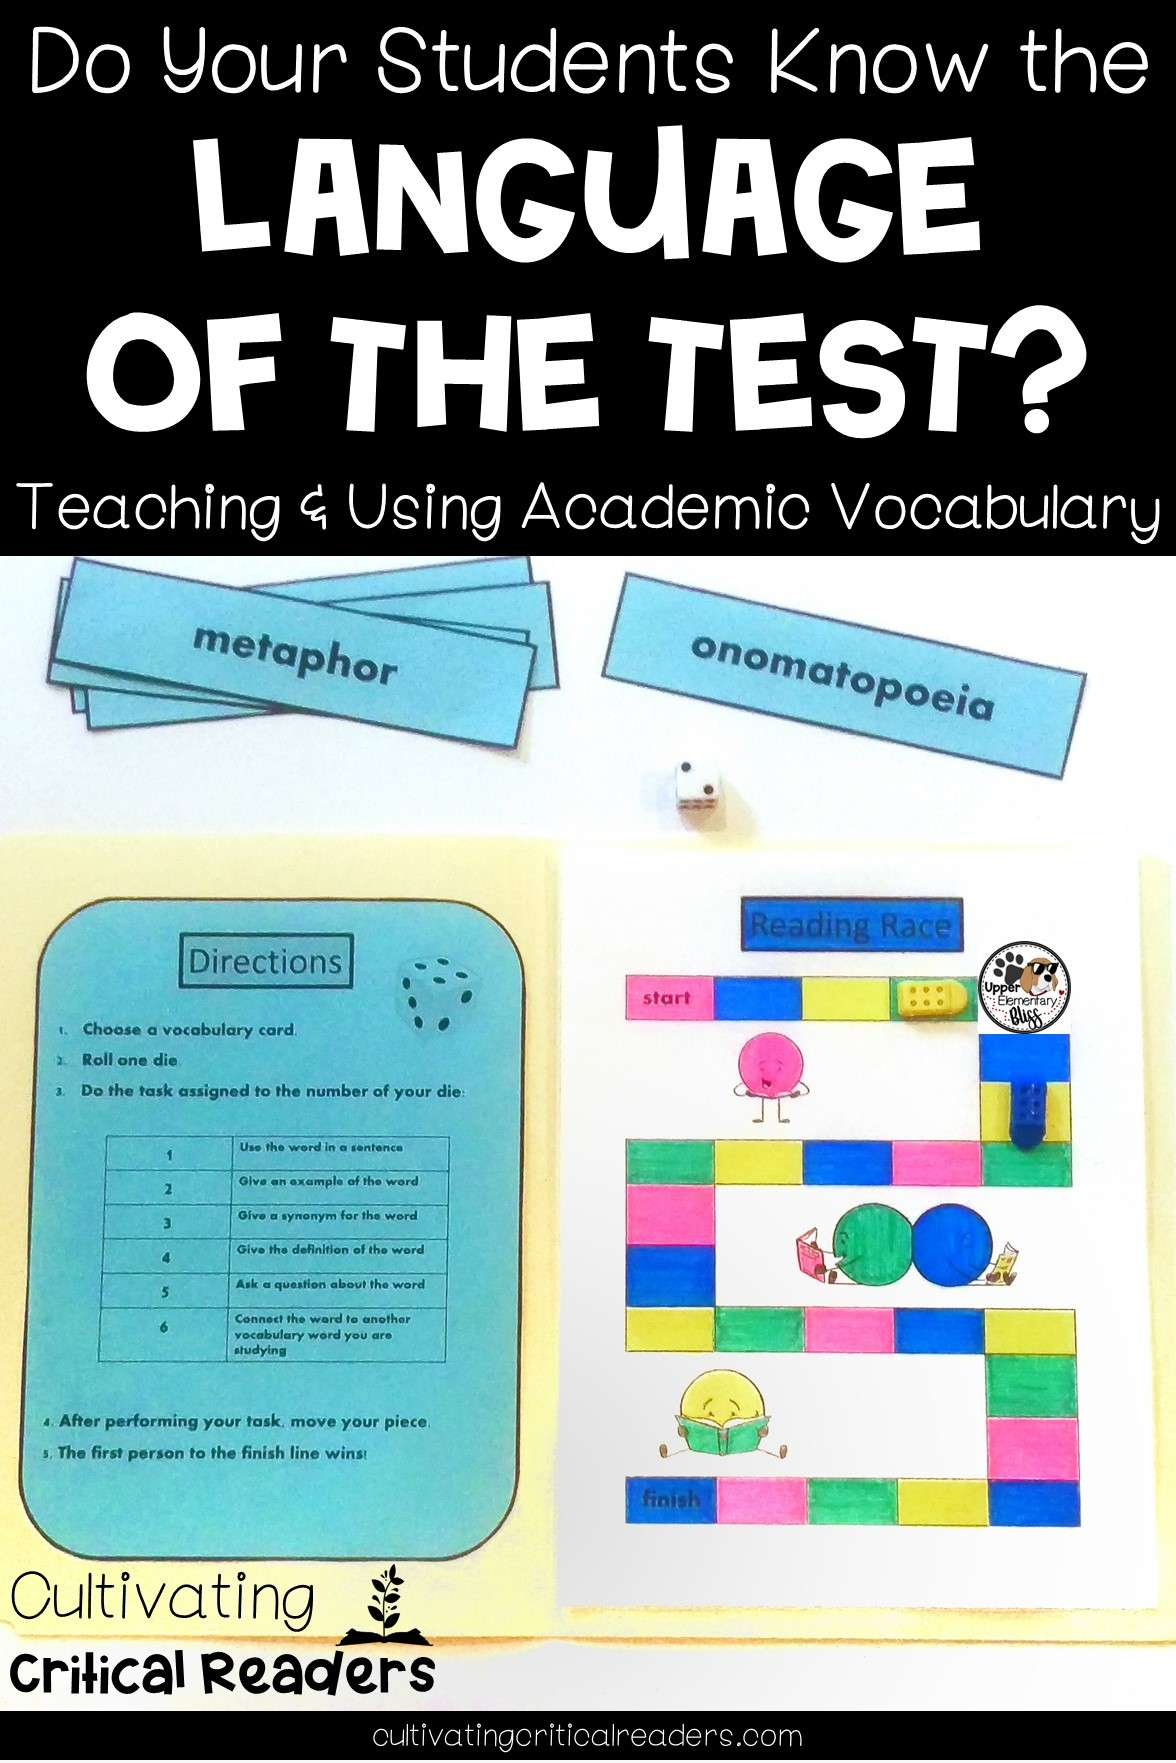 Do Your Students Know the Language of the Test